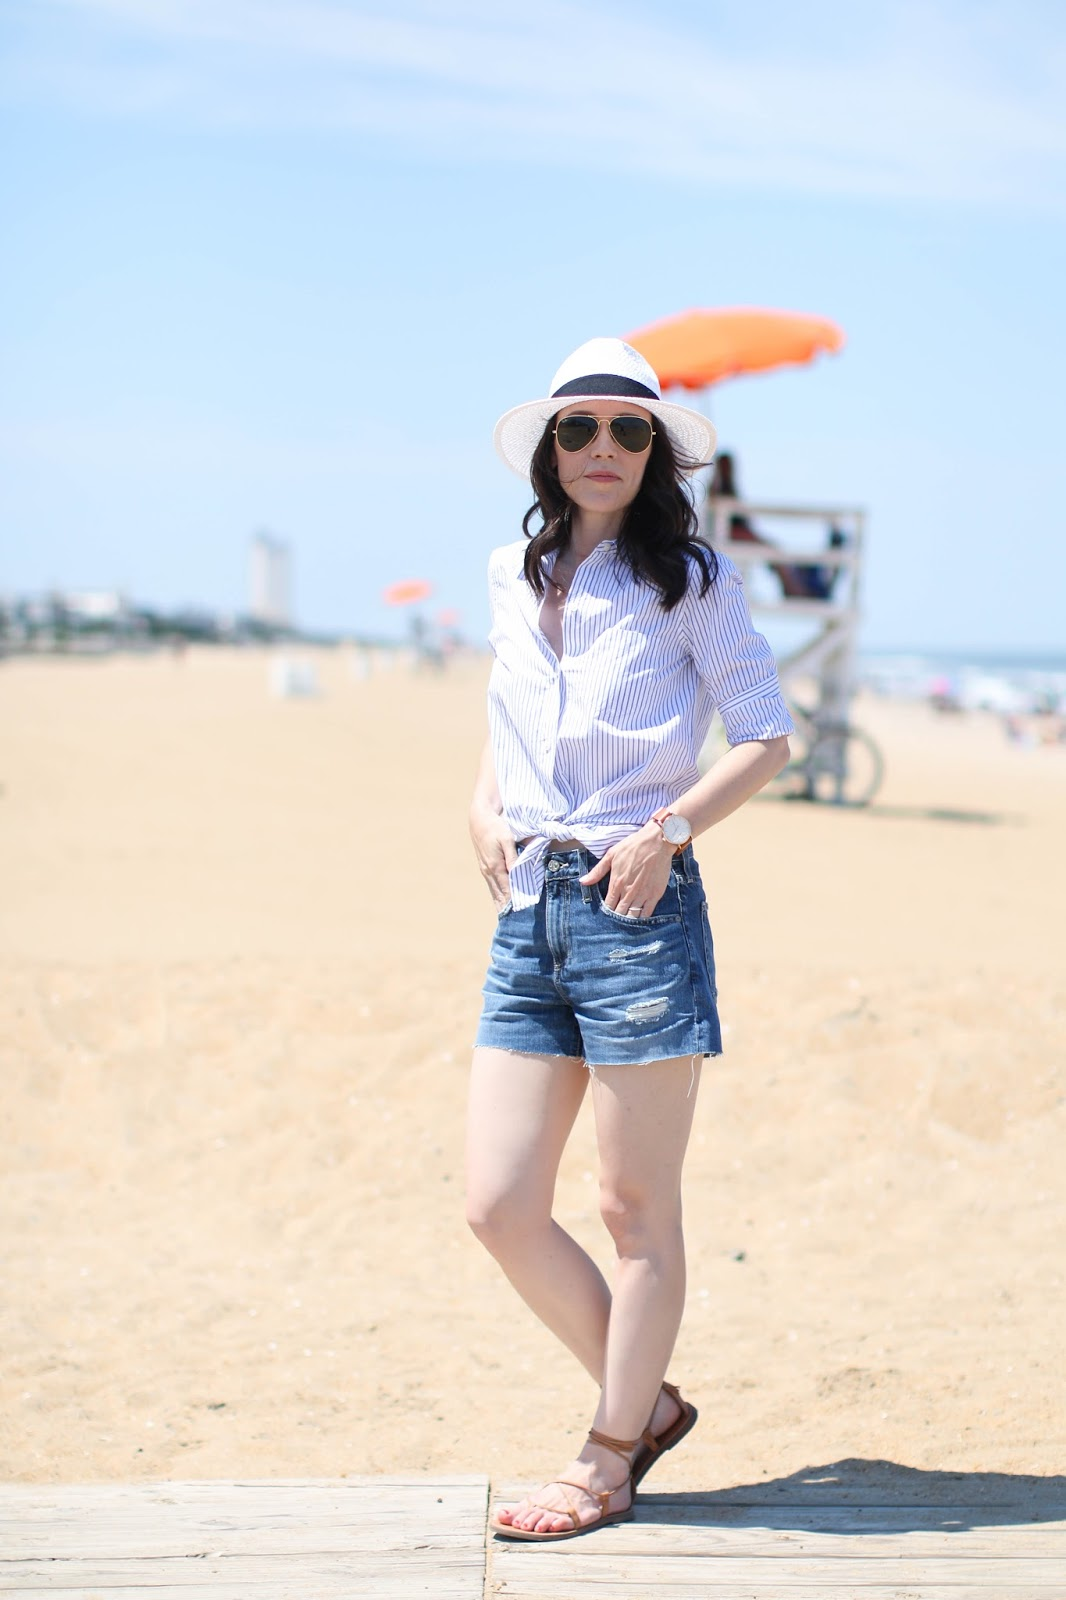 Casual beach day outfit